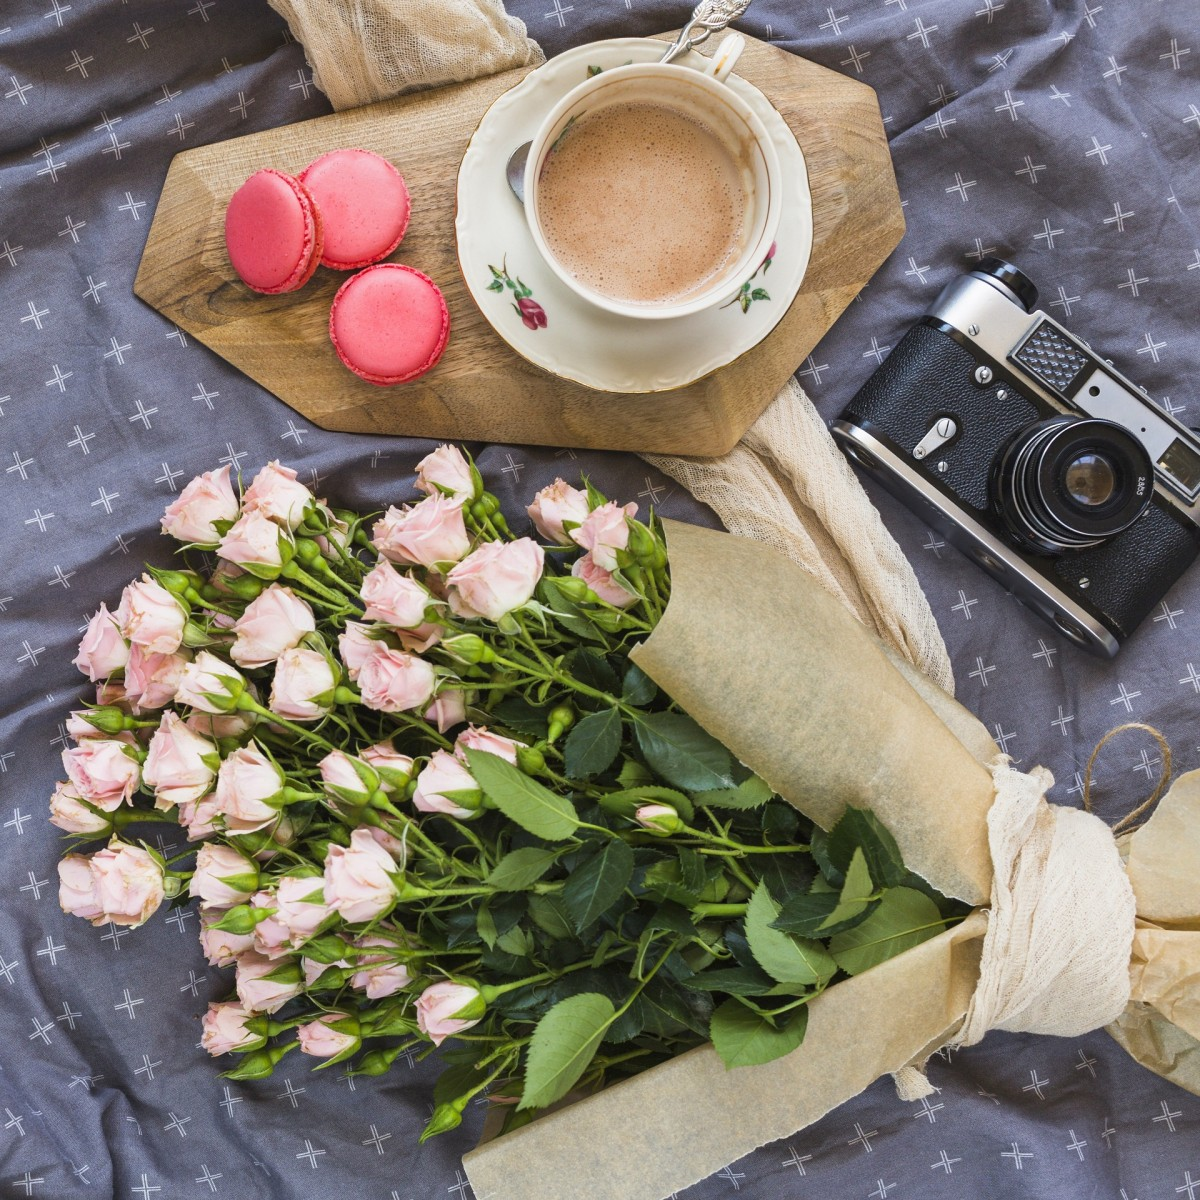 Jigsaw Puzzle Solve jigsaw puzzles online - Still life with camera